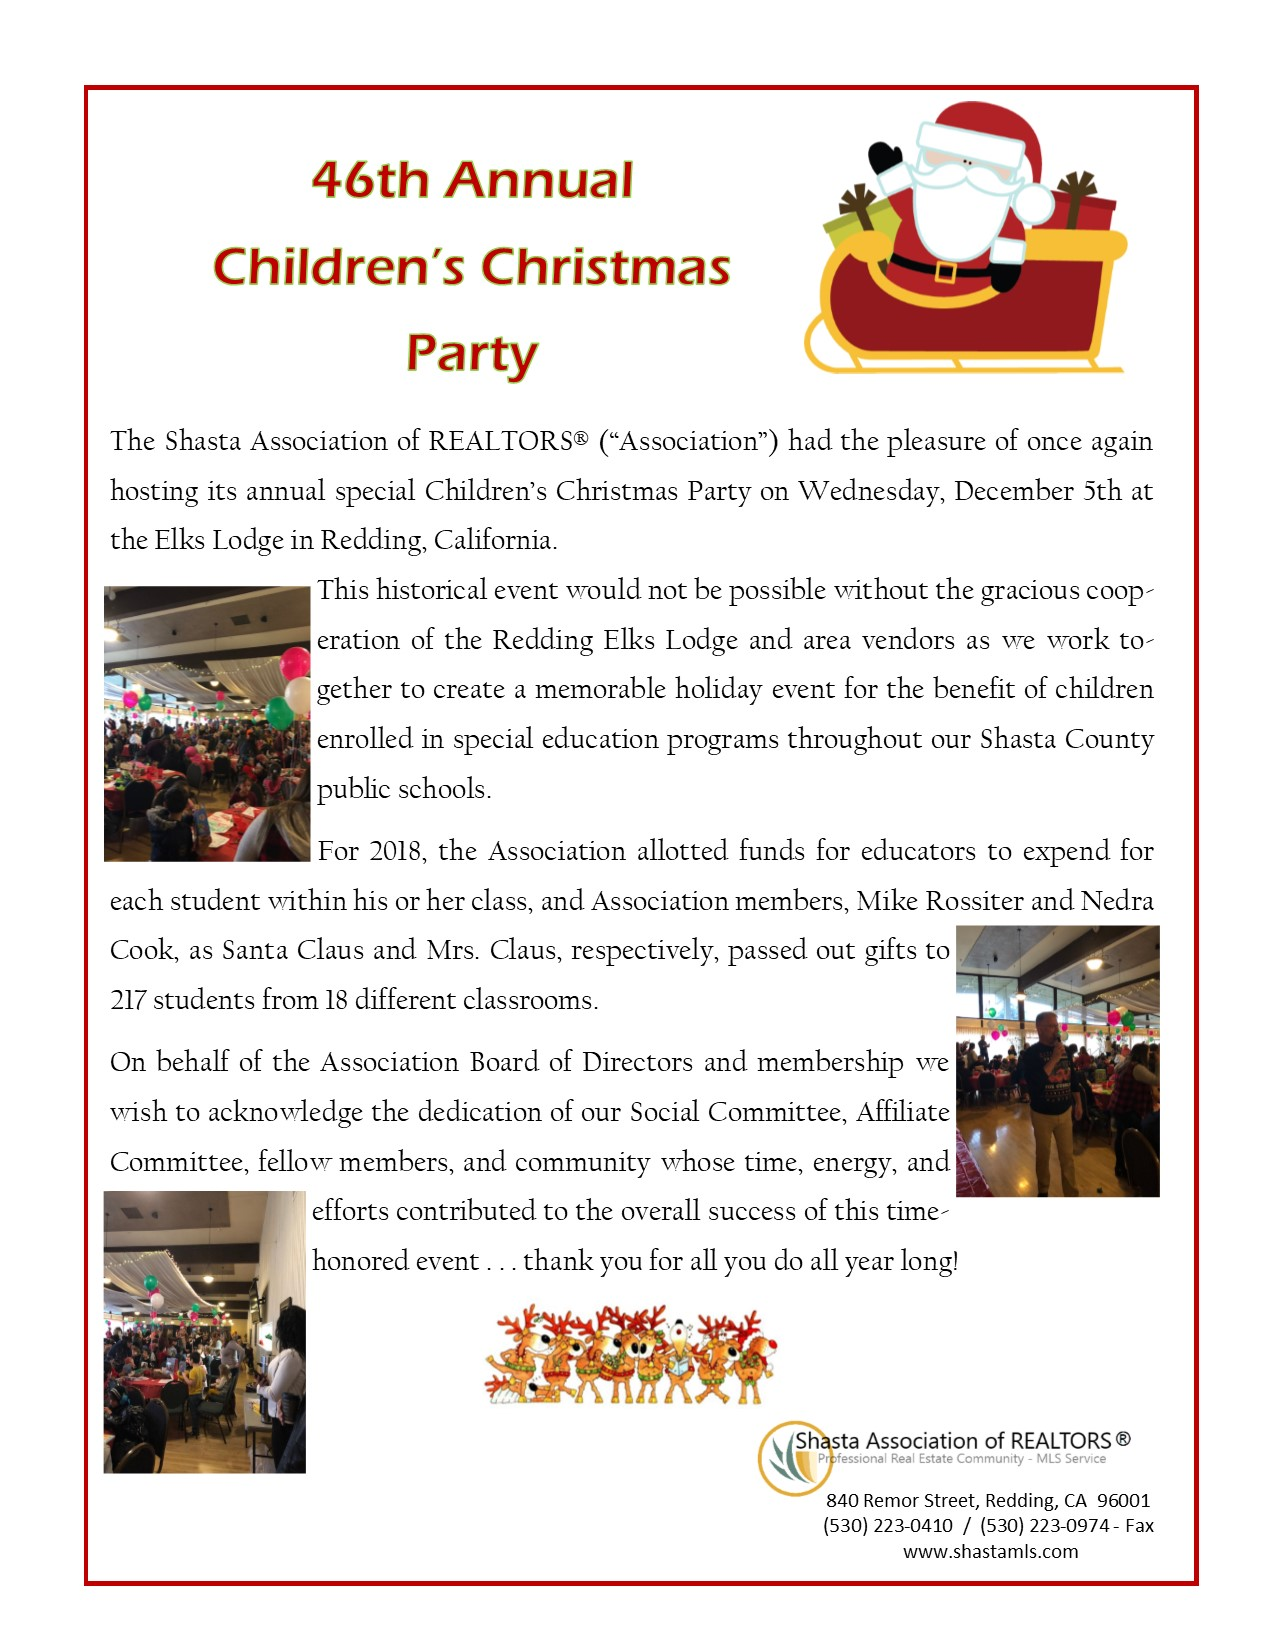 18-12-05;Children's Christmas Party Announcement.jpg